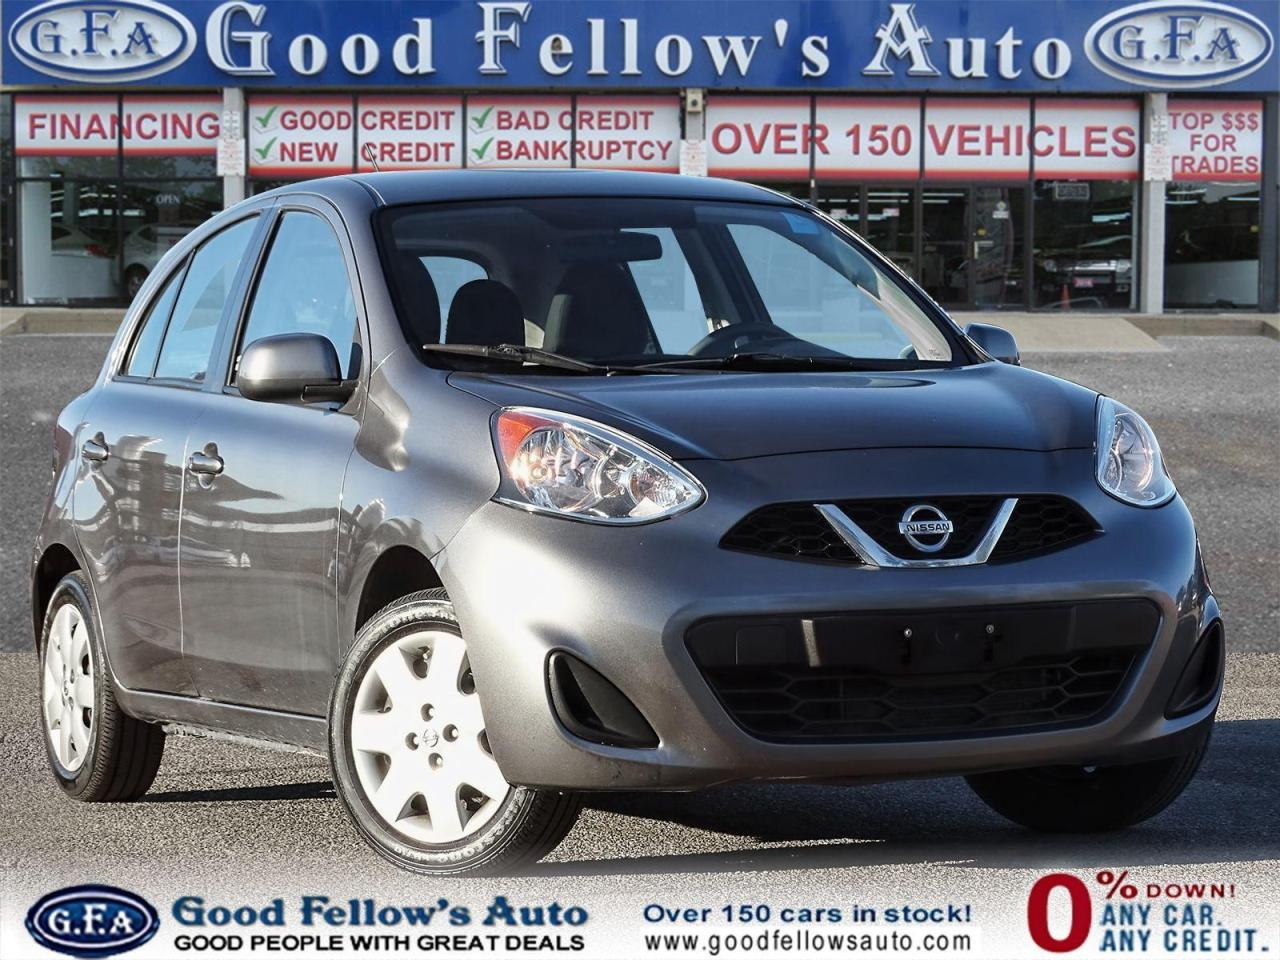 used 2016 Nissan Micra car, priced at $10,399